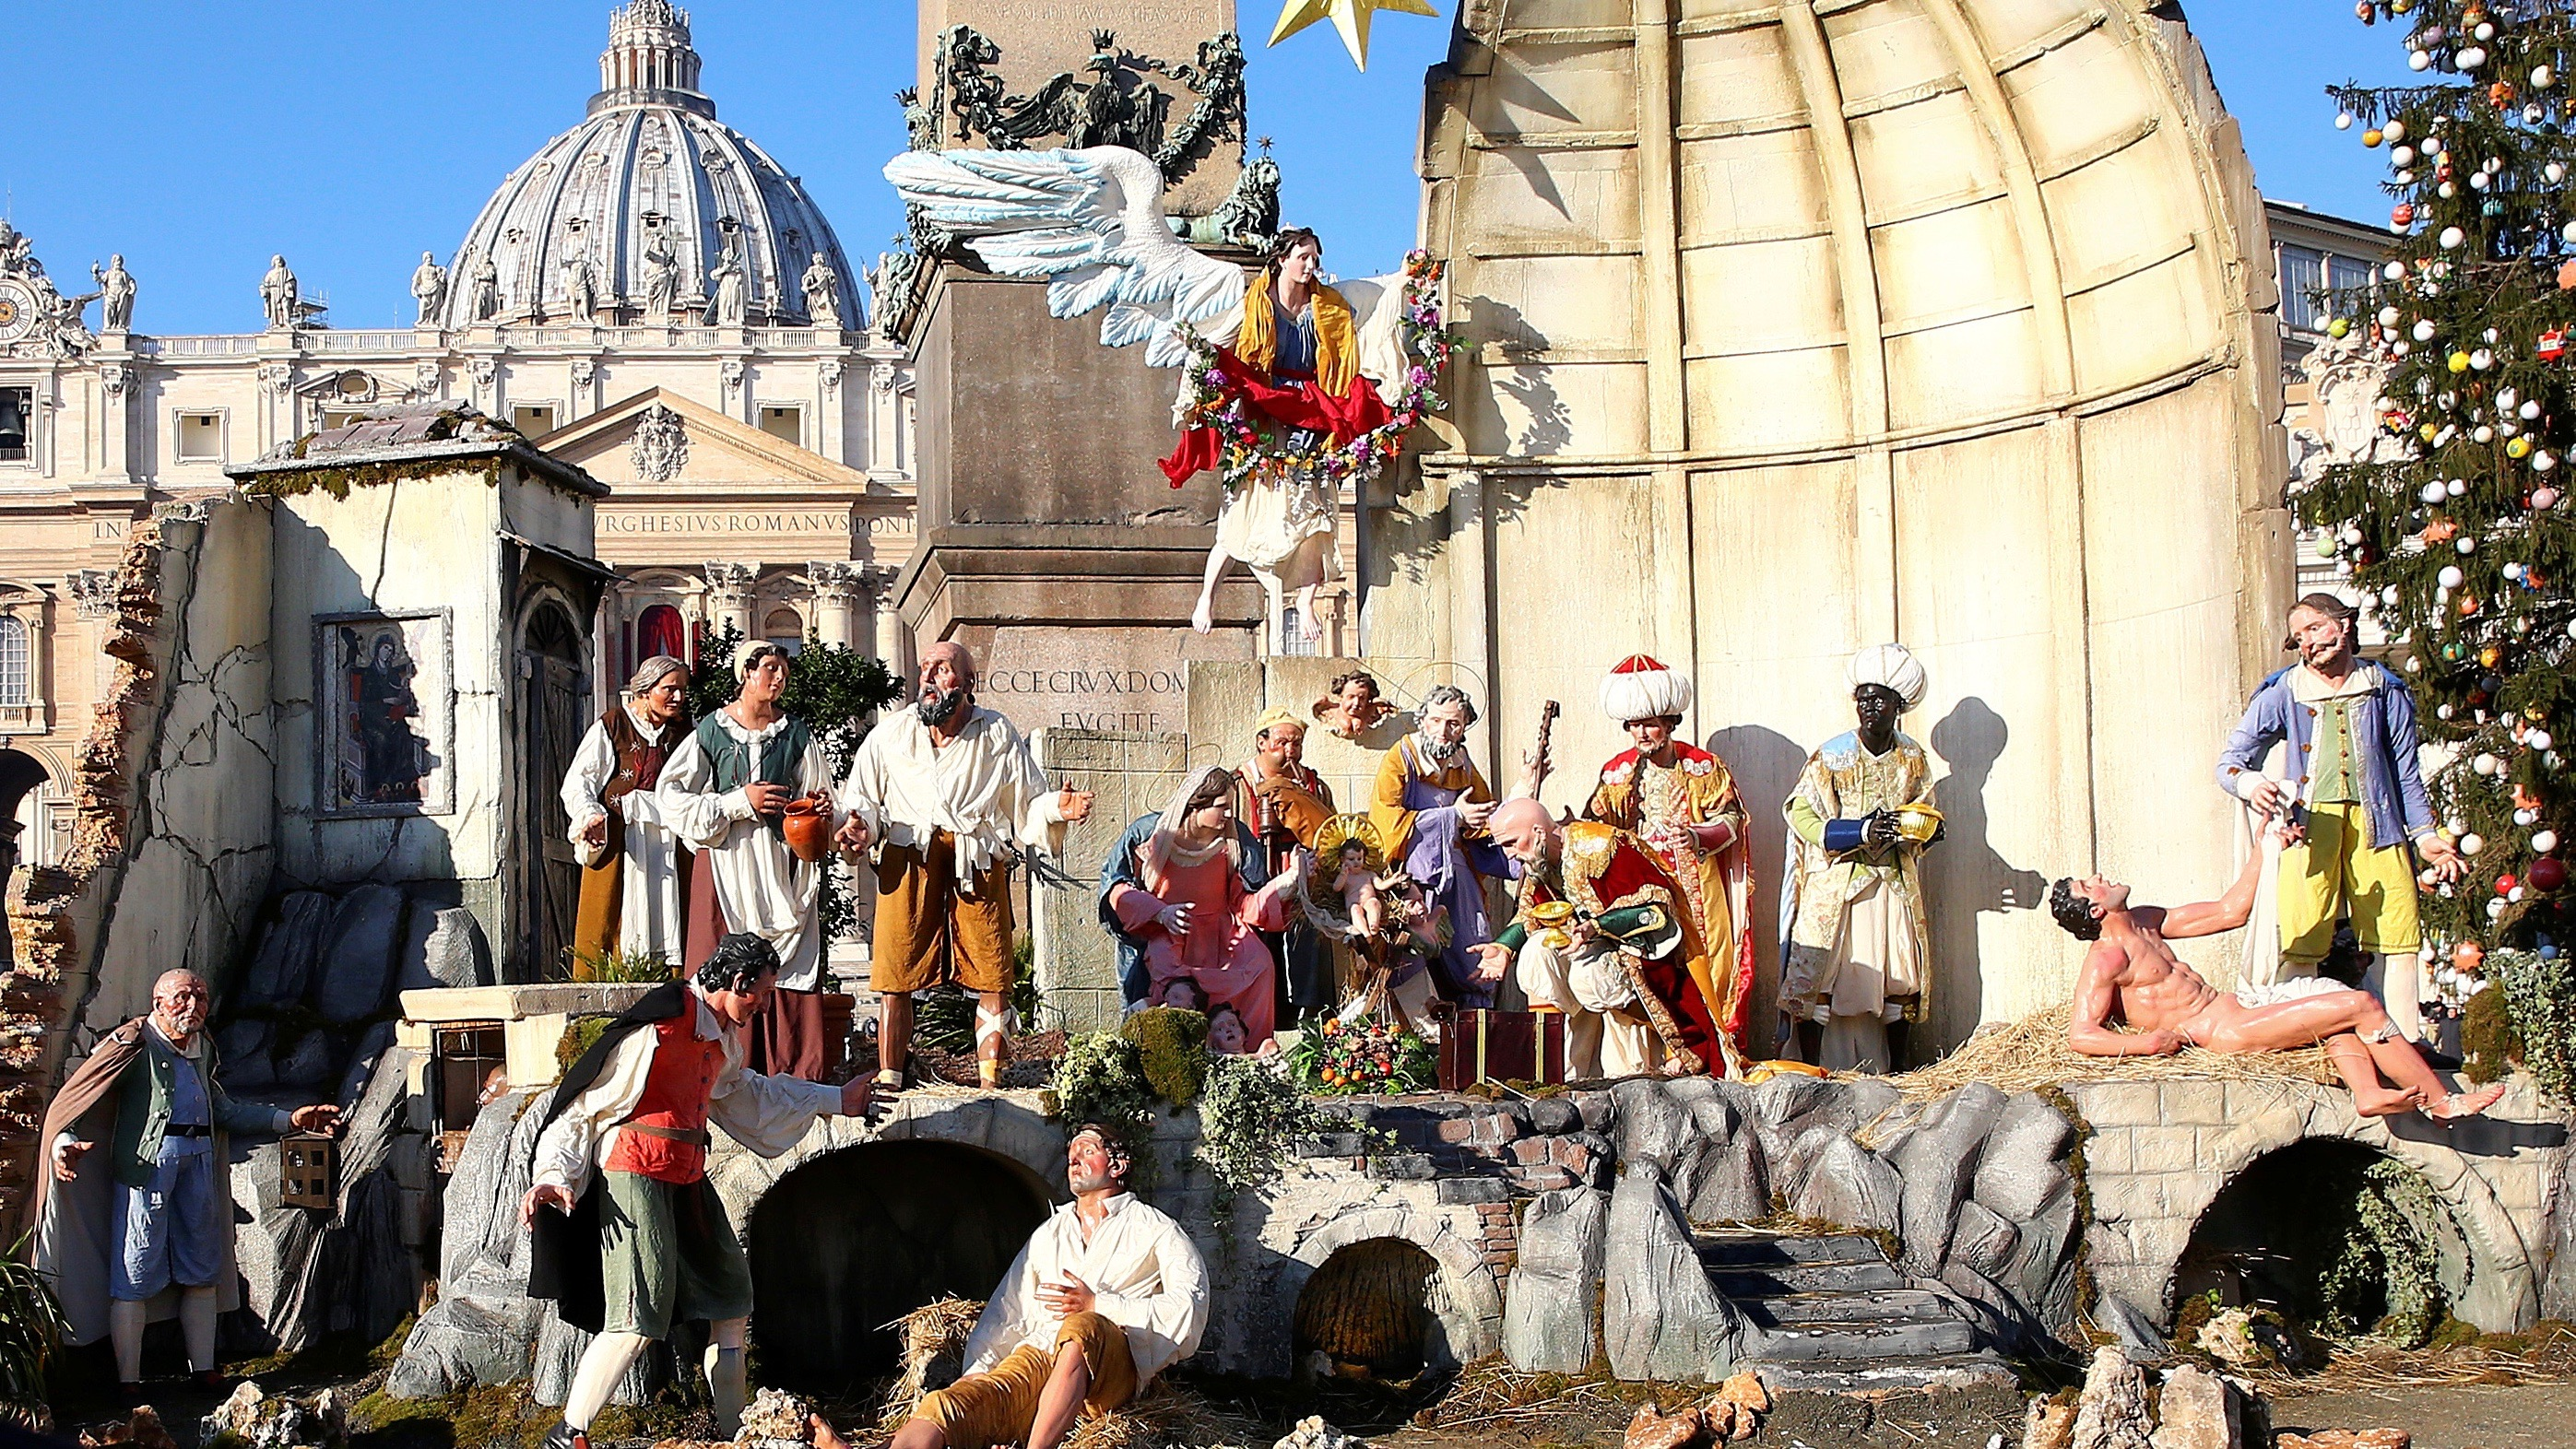 The nativity scene at St. Peter's Basilica in Rome, Christmas 2017.